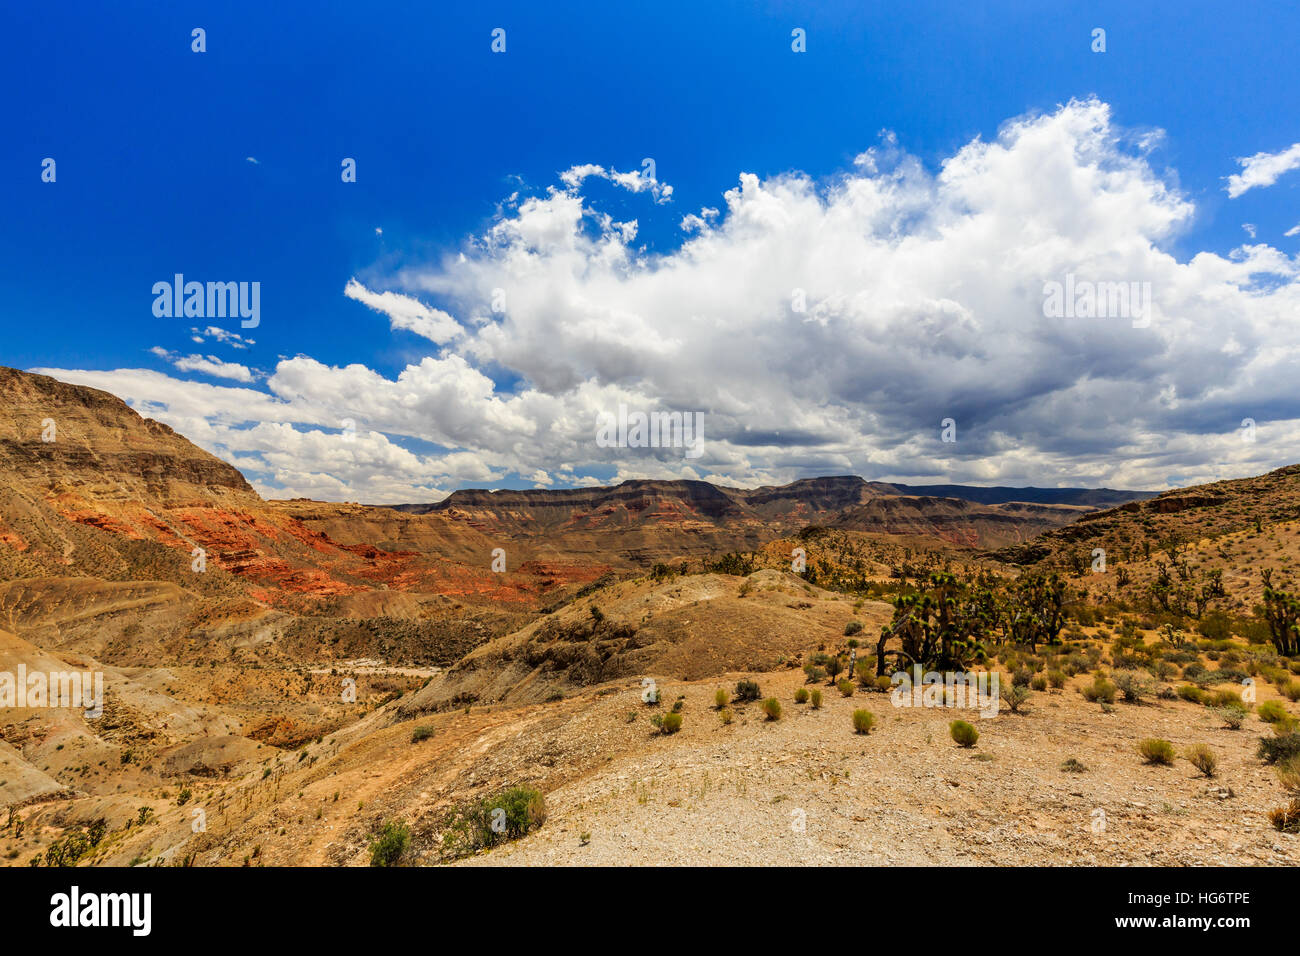 Landscape with Joshua Trees at Joshua Tree Road in the Mojave Desert near Scenic Backway. - Stock Image